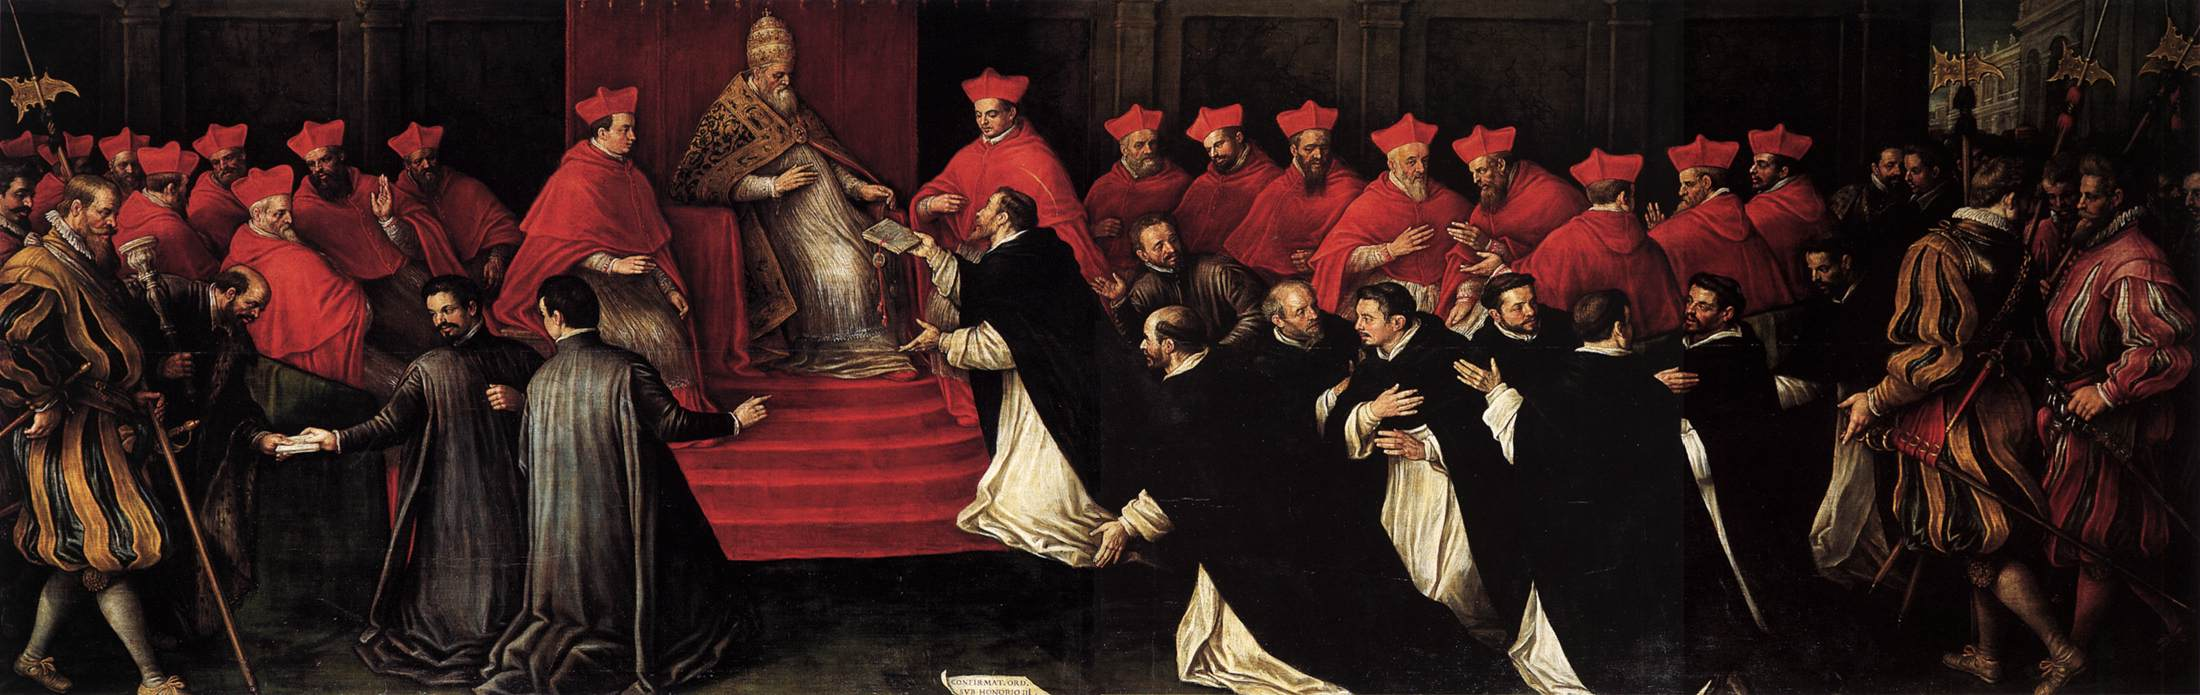 Honorius III Approving the Rule of St Dominic in 1216